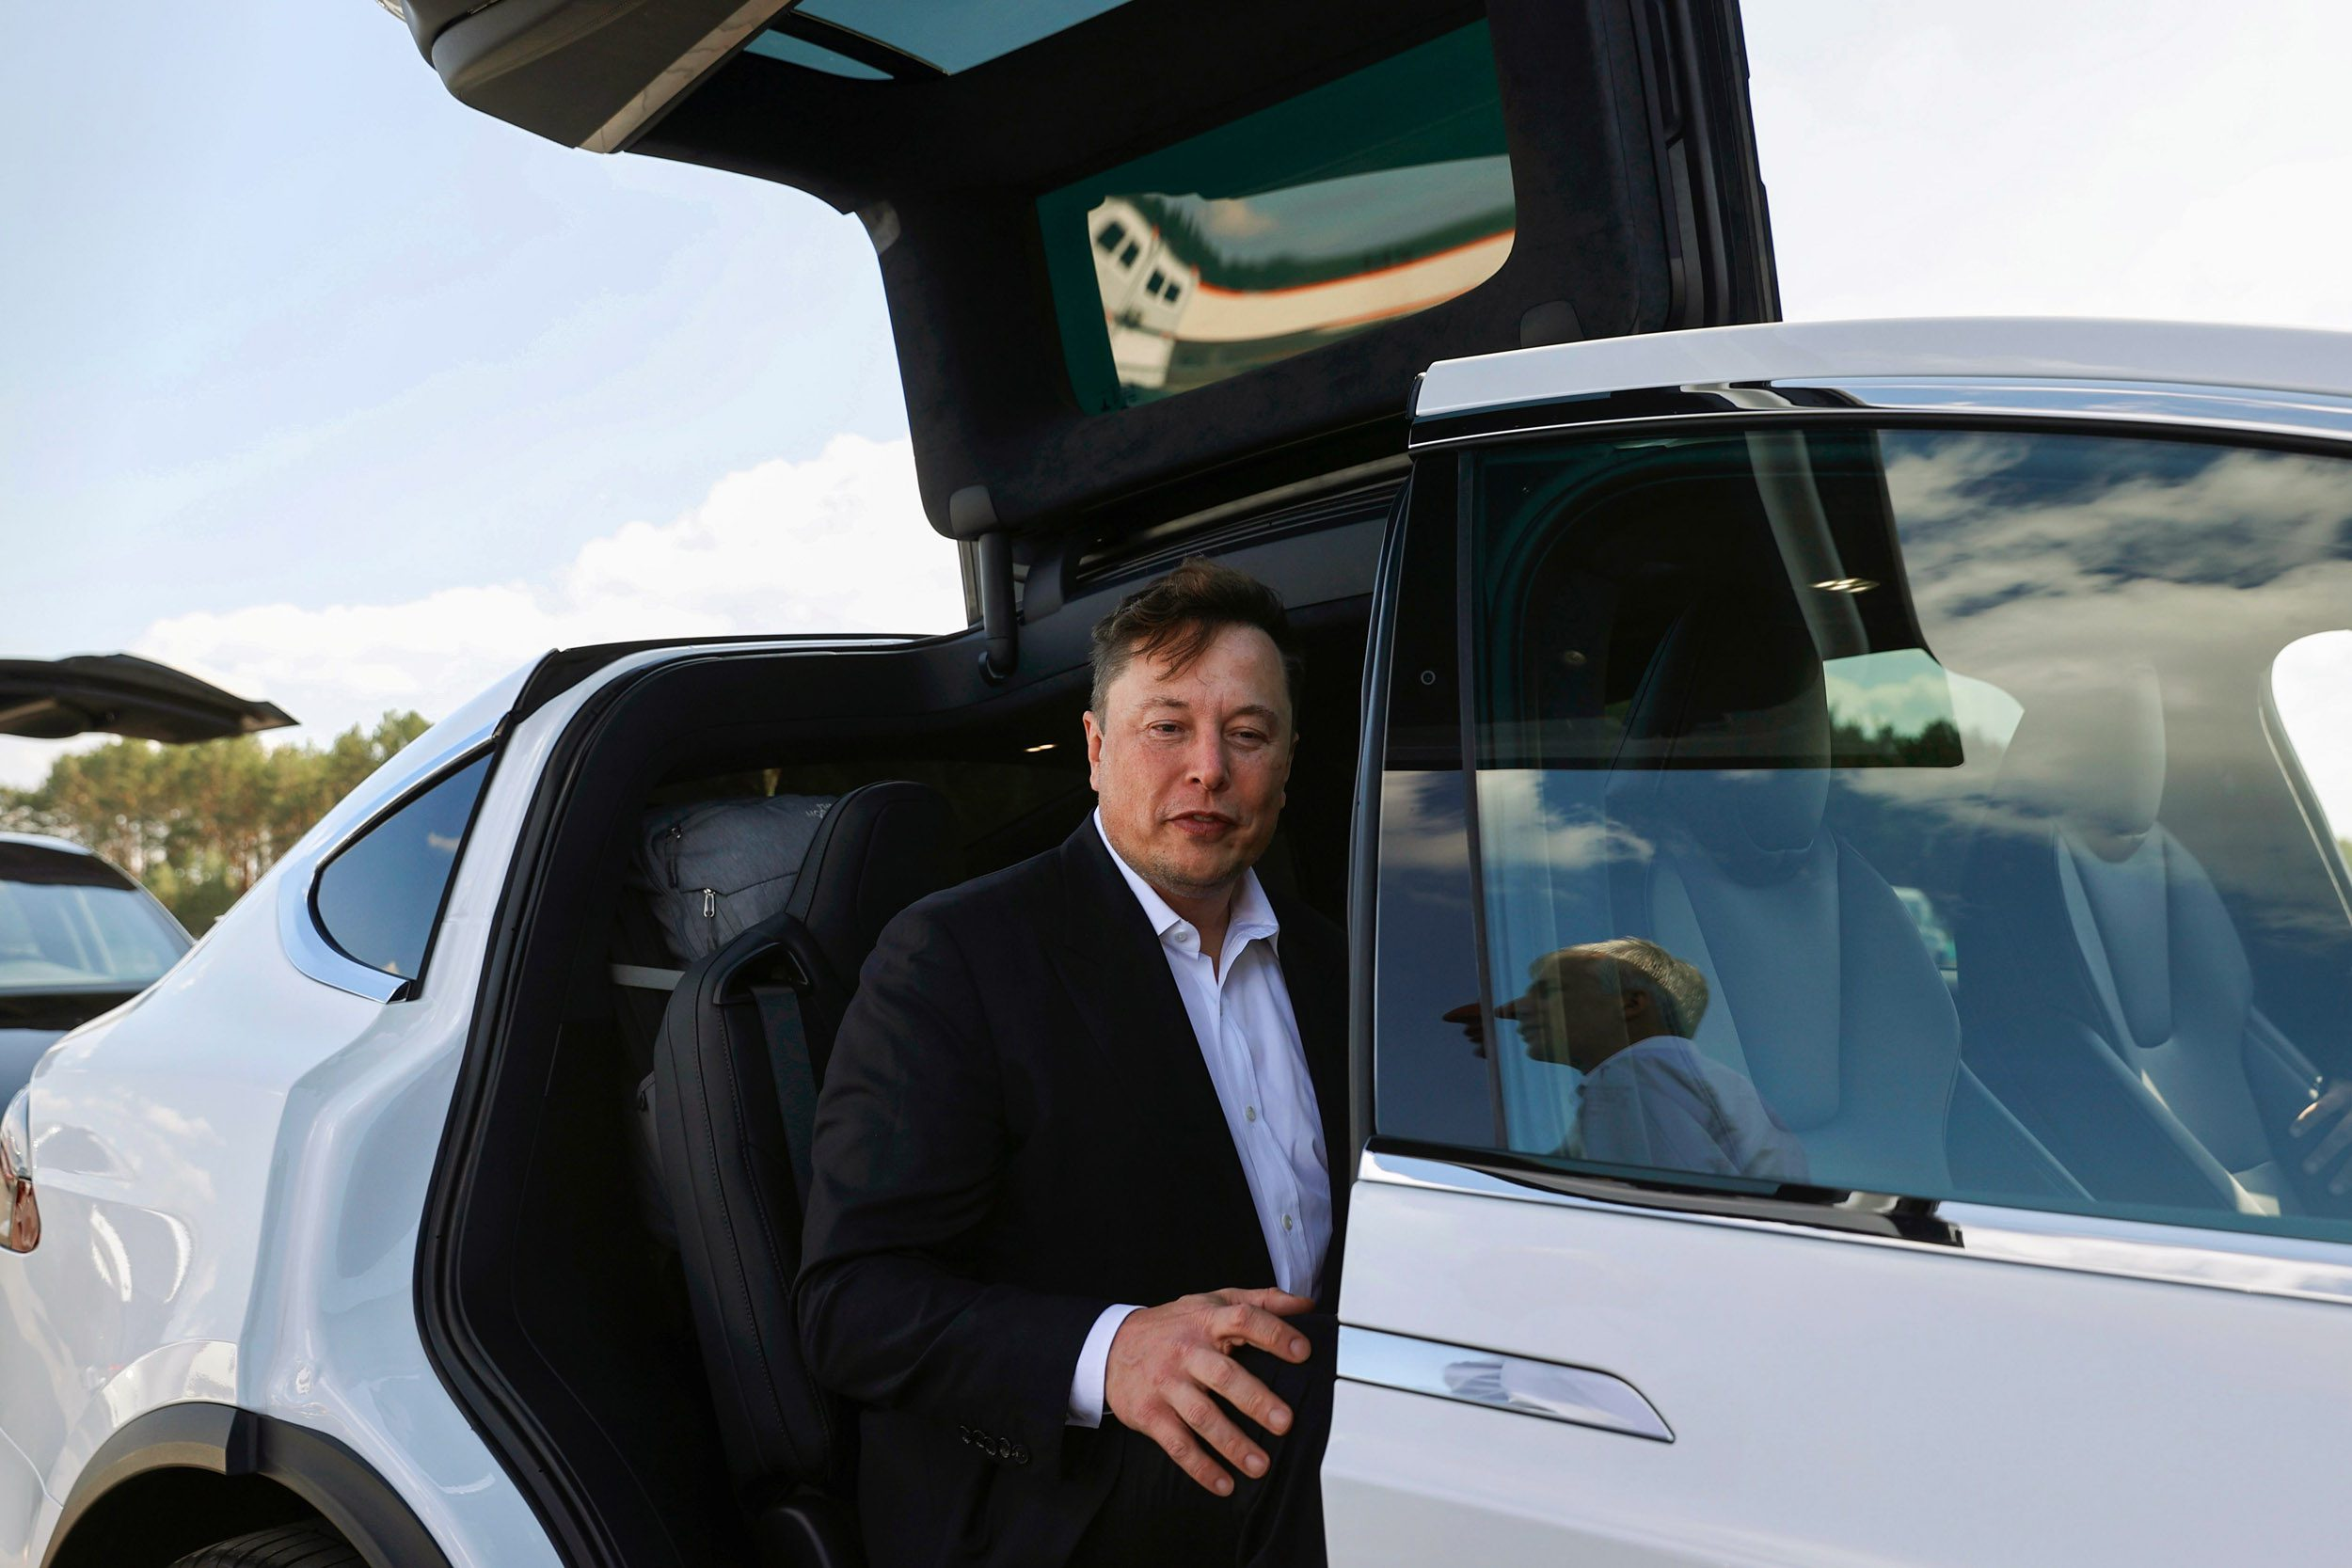 Elon Musk confirms Tesla car prices are on the rise